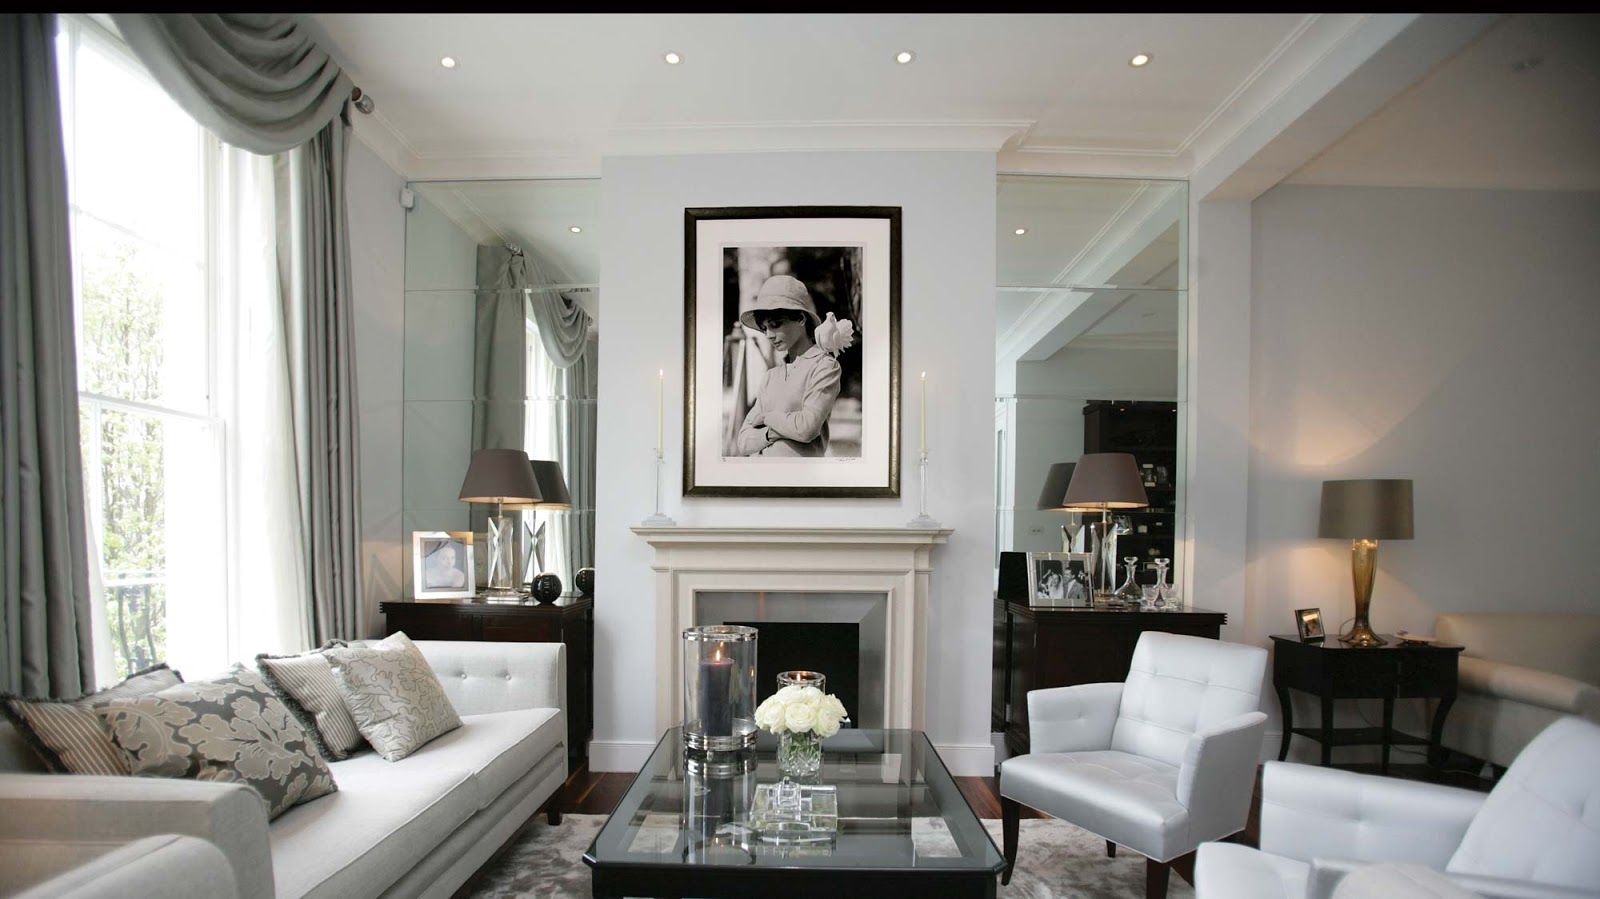 In love with beauty inspiring interiors by katharine pooley for Home interior design ideas uk